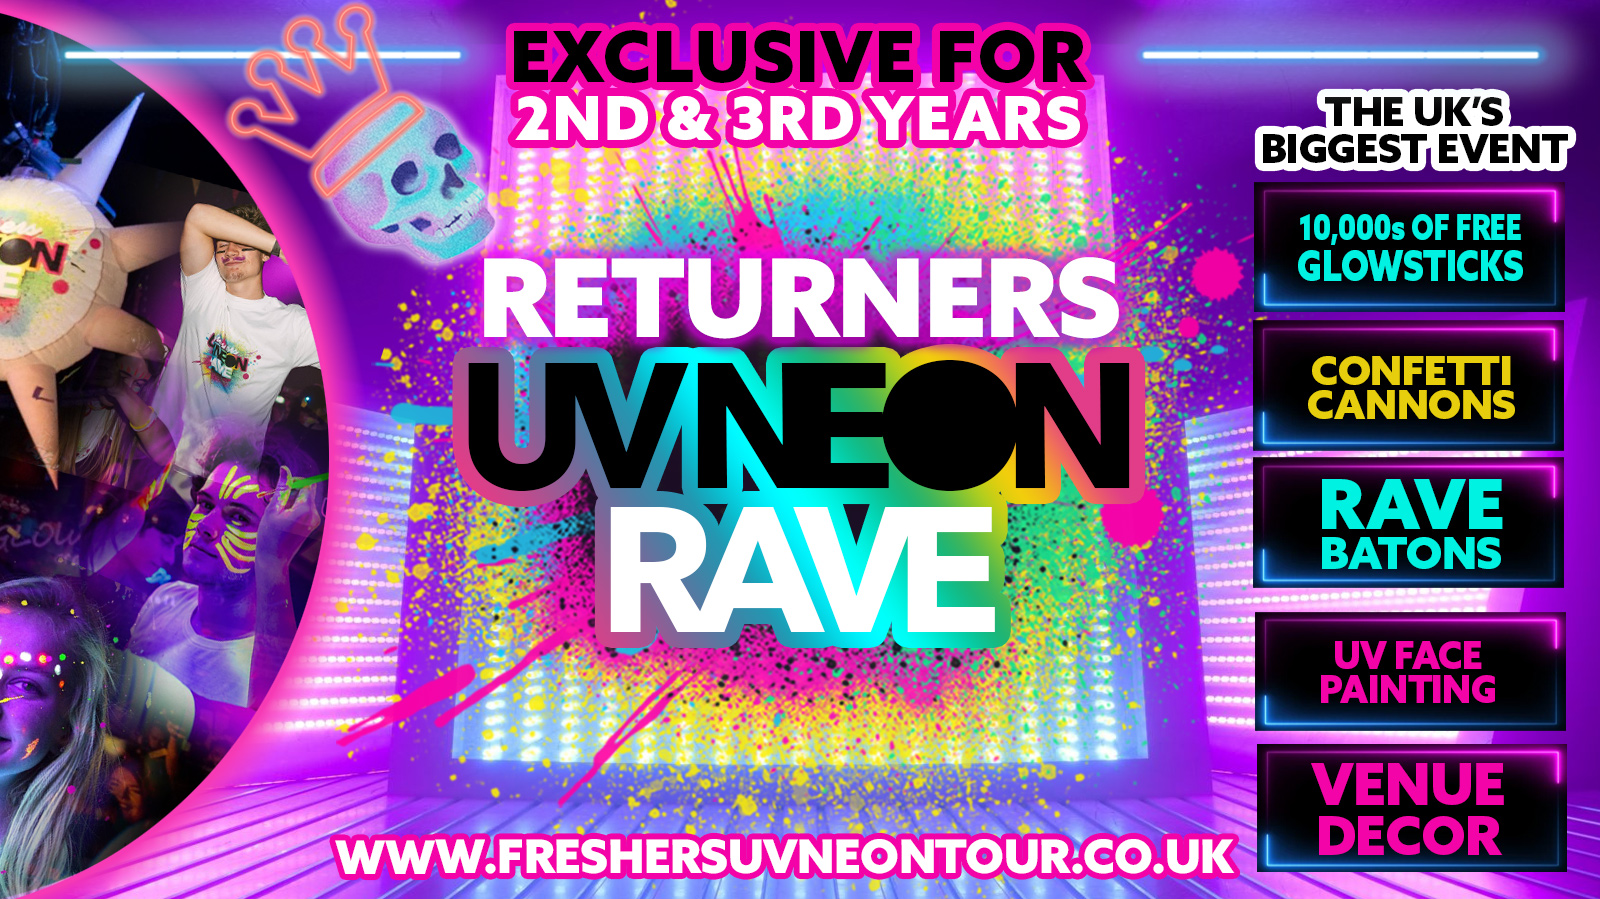 Sheffield Returners UV Neon Rave | Exclusive for 2nd & 3rd Years